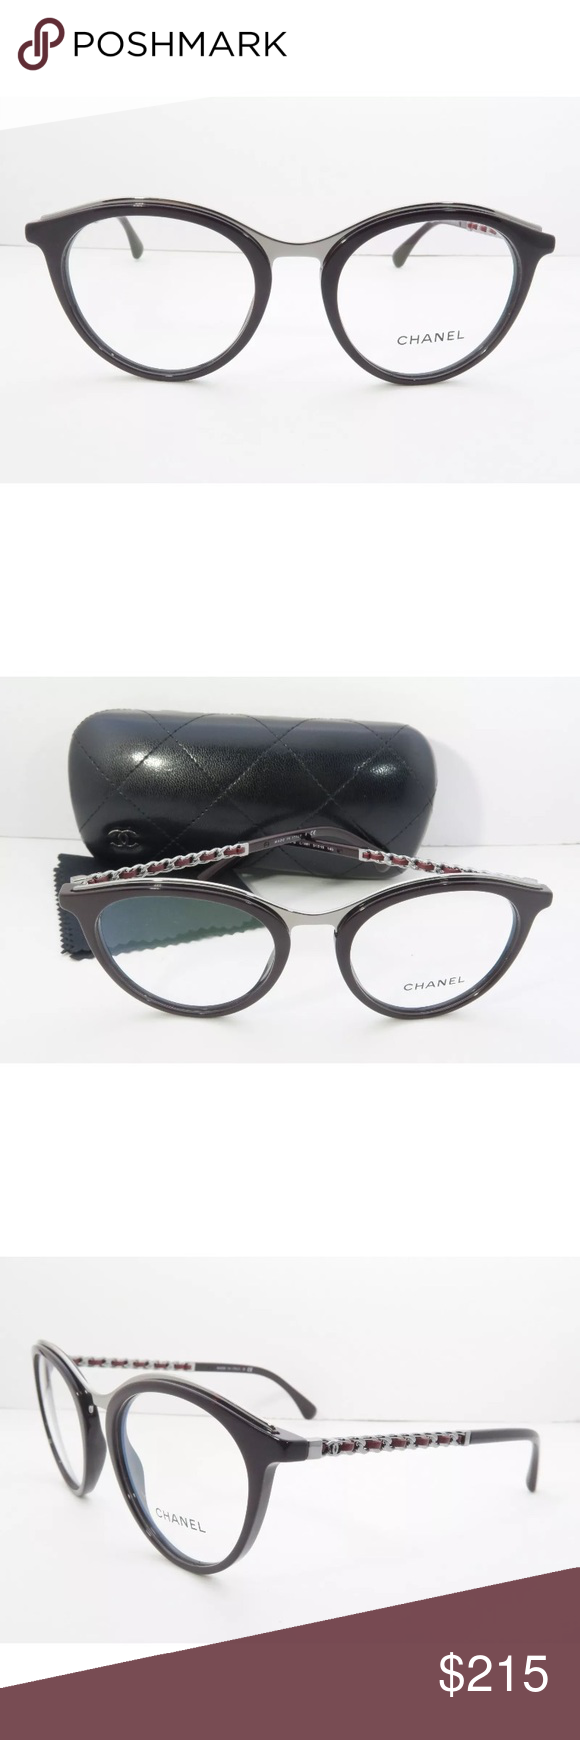 58370ea2f71 Chanel eyeglasses 3349!Burgundy Frame New with clear lens Comes with Chanel  case Authentic CHANEL